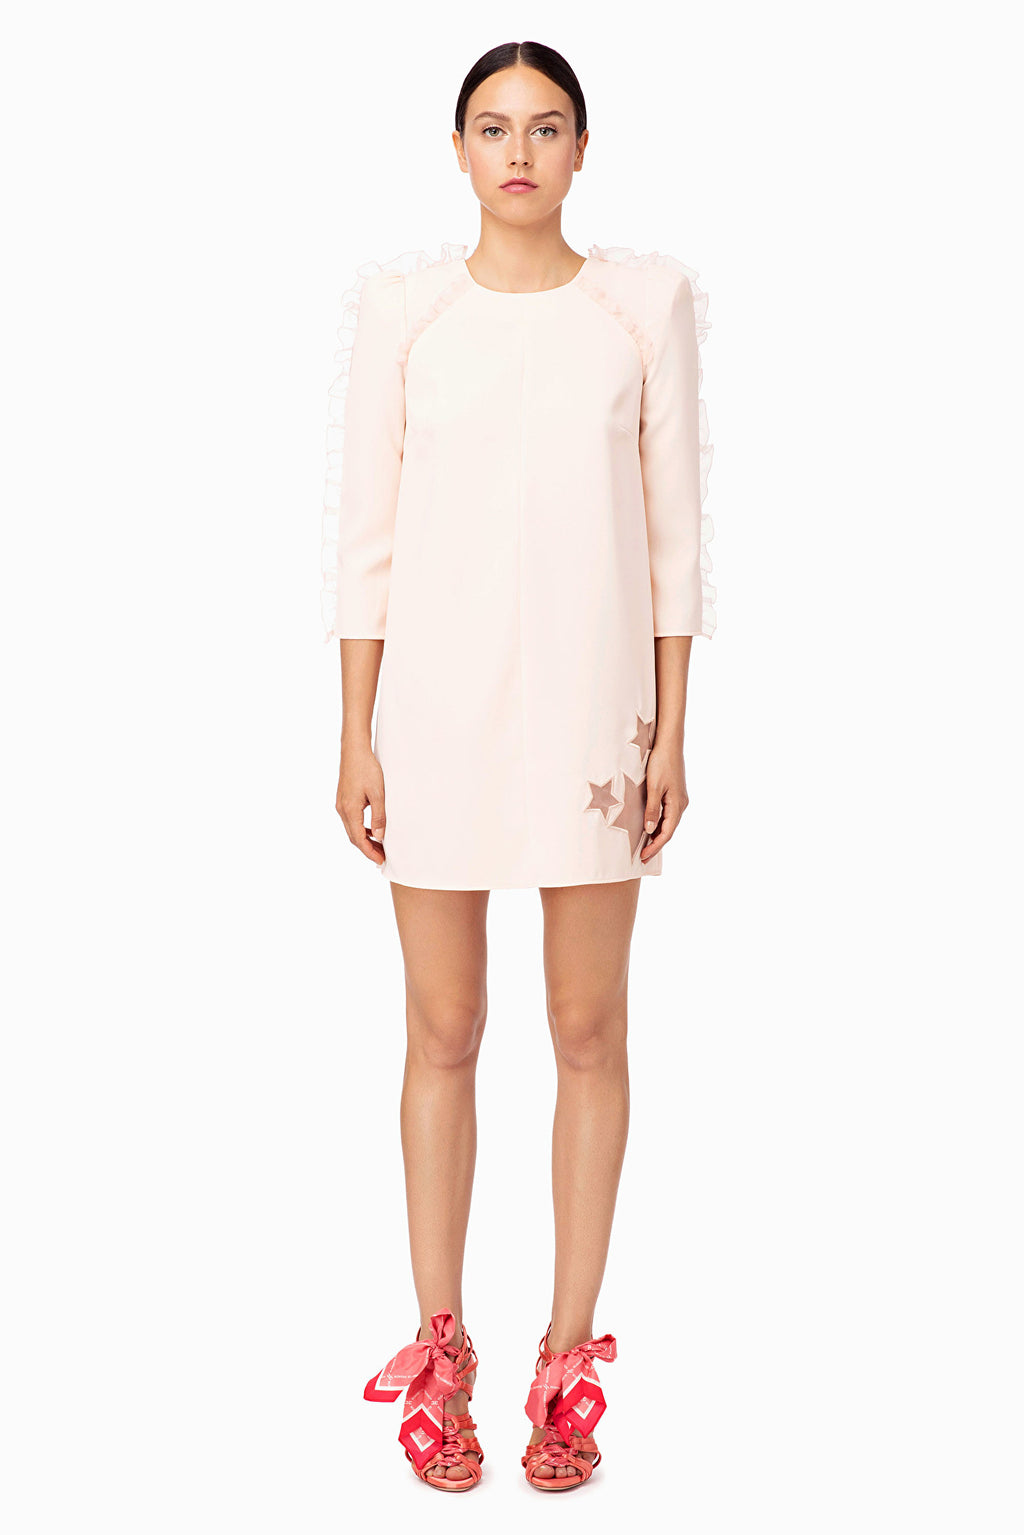 Dusty Rose Mini Dress with Long Sleeves and Star Accent